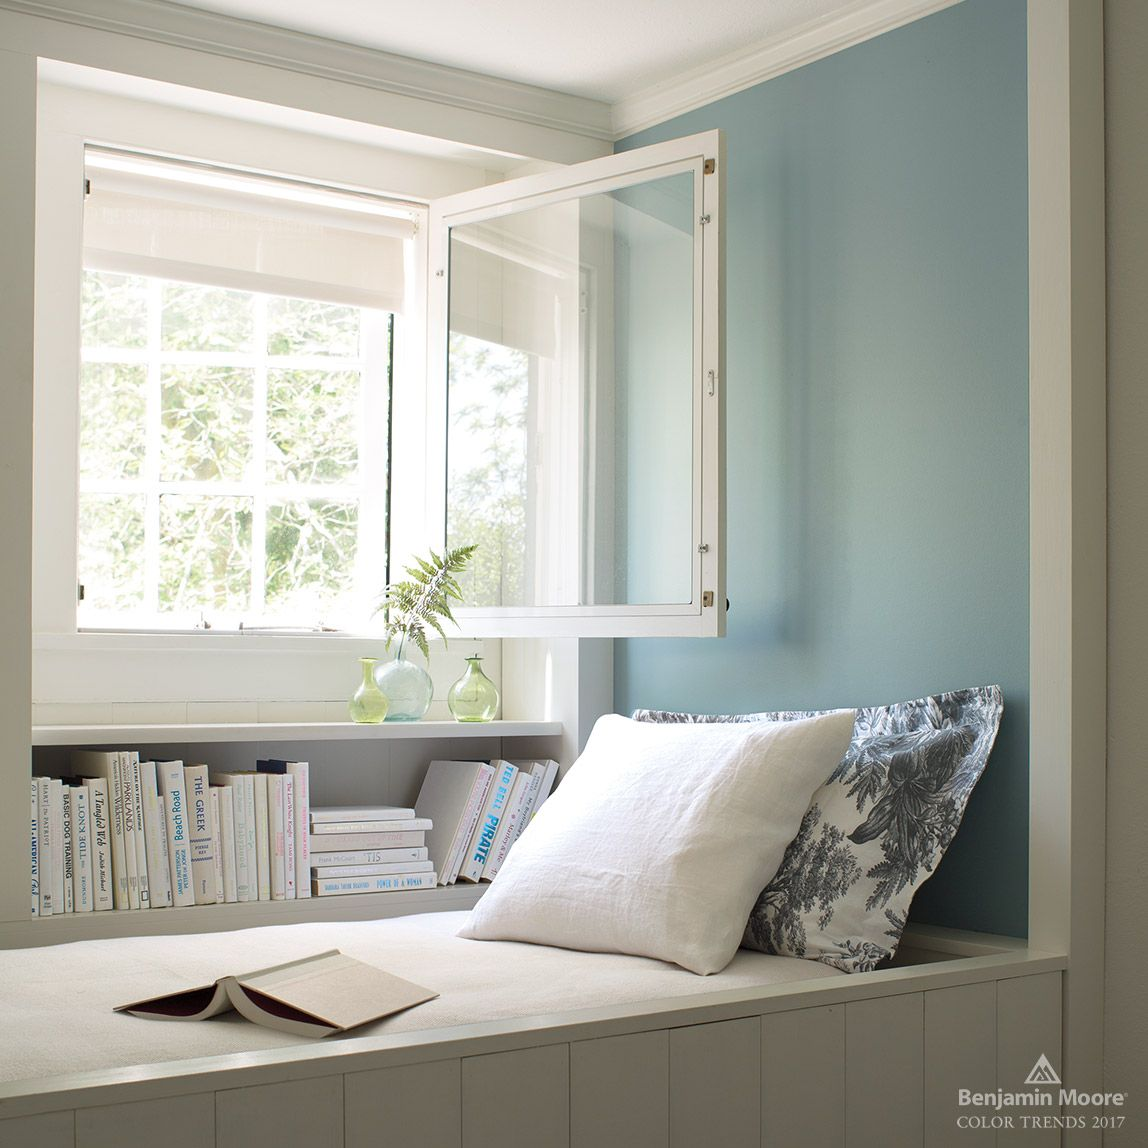 2017 color trends benjamin moore light blue walls and Trending interior paint colors